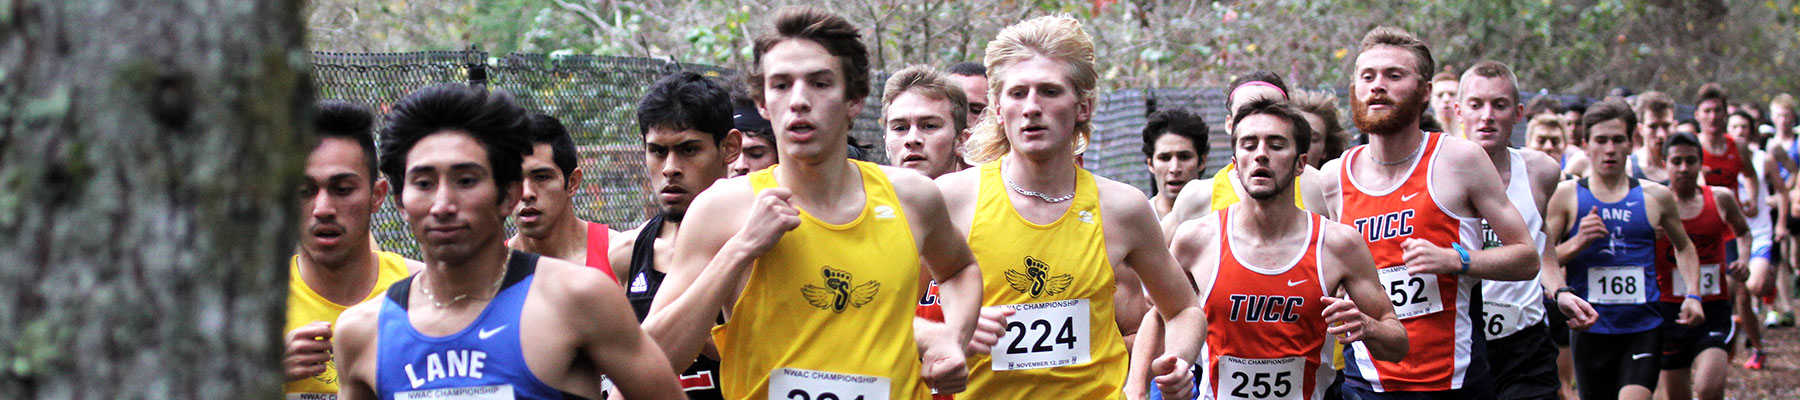 The Bigfoot Men's Cross Country team racing against other teams